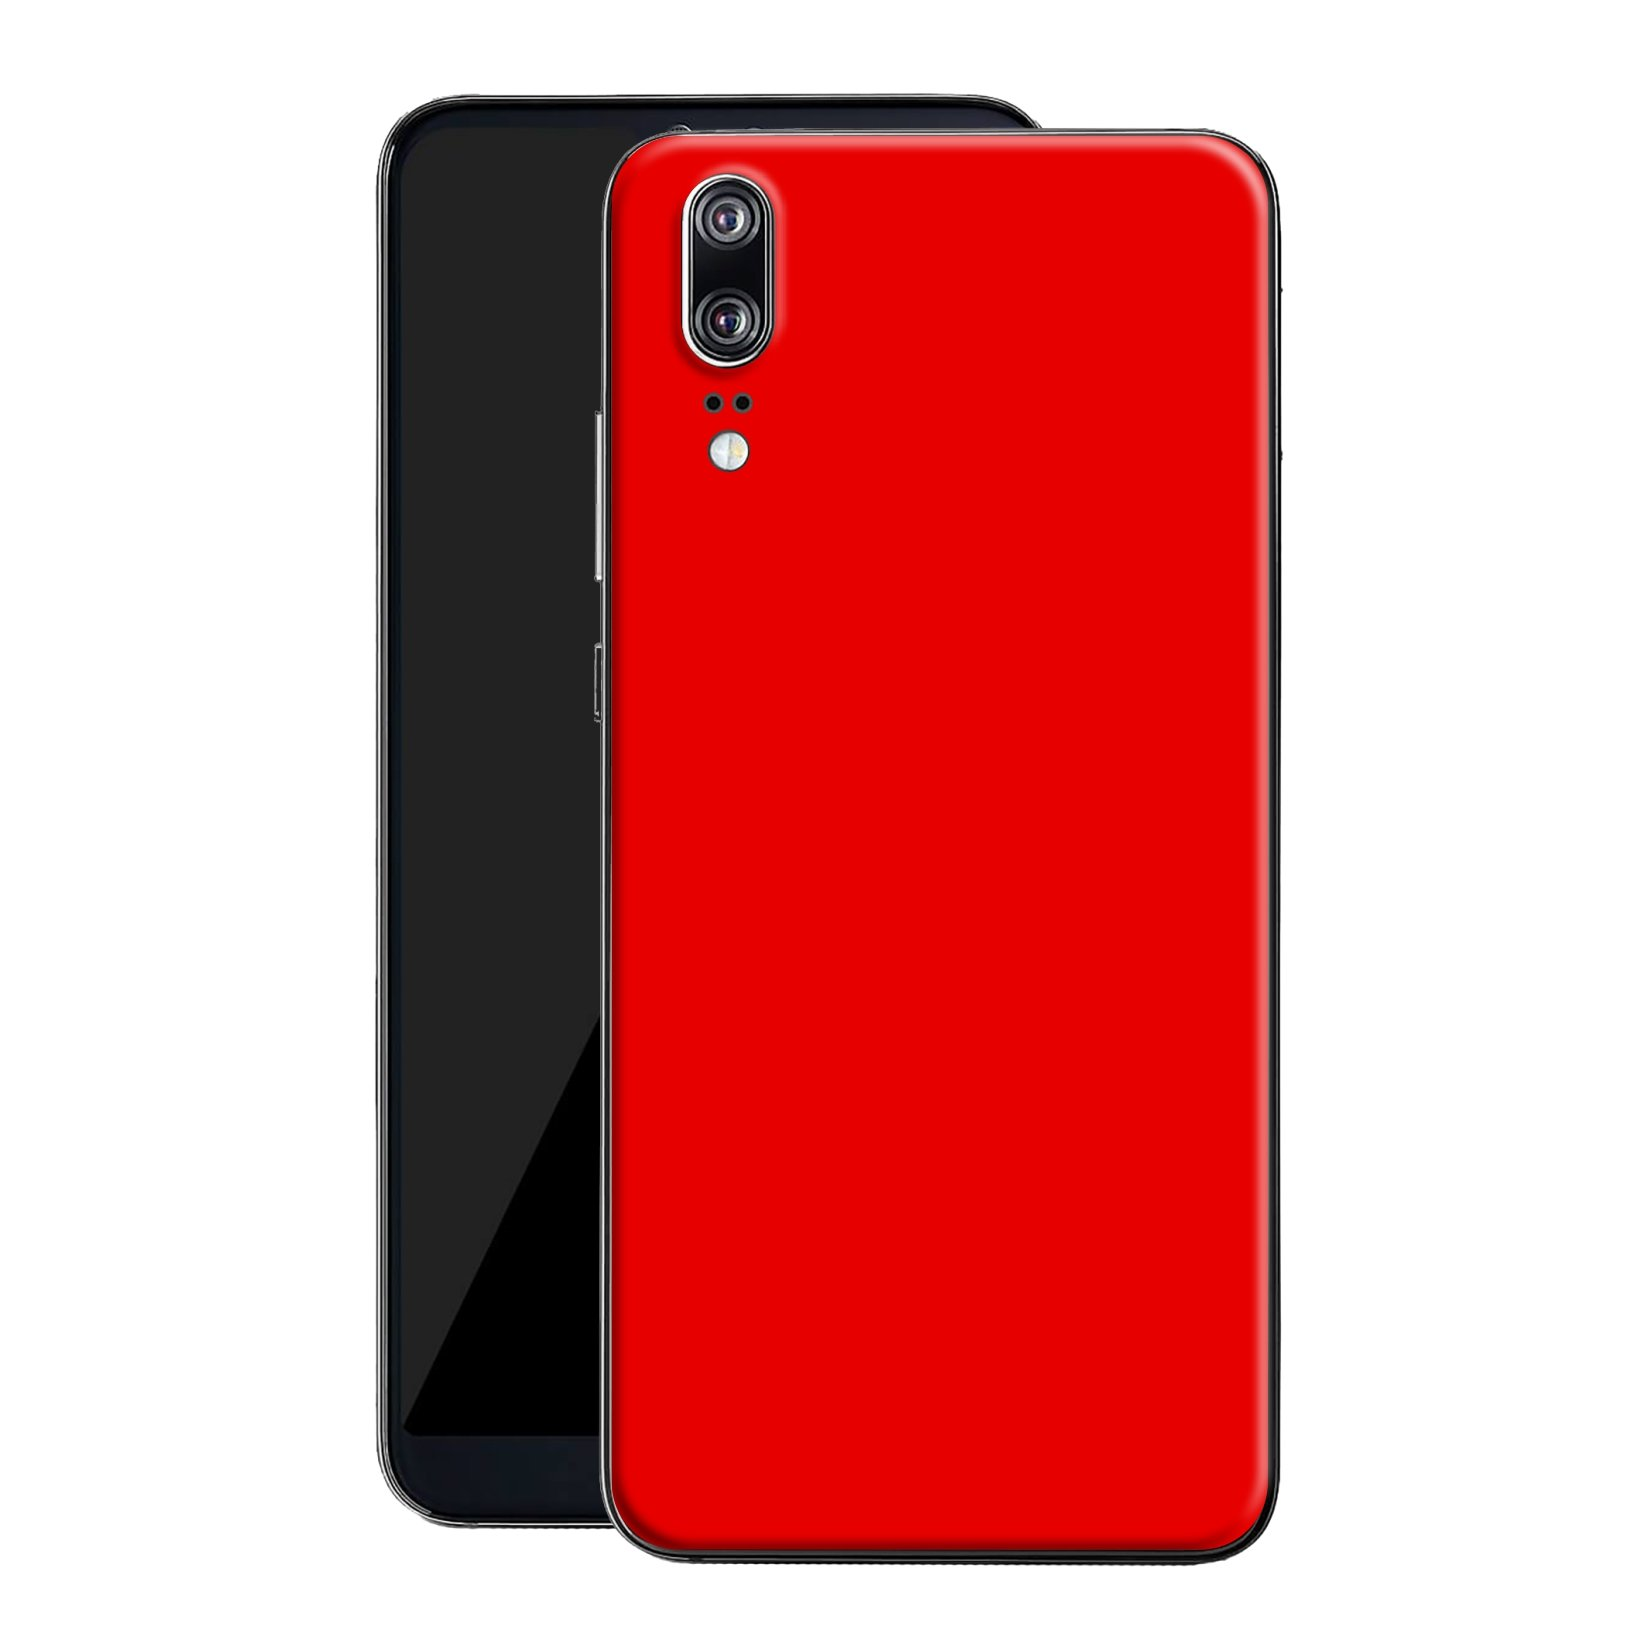 Huawei P20 Red Matt Skin, Decal, Wrap, Protector, Cover by EasySkinz | EasySkinz.com